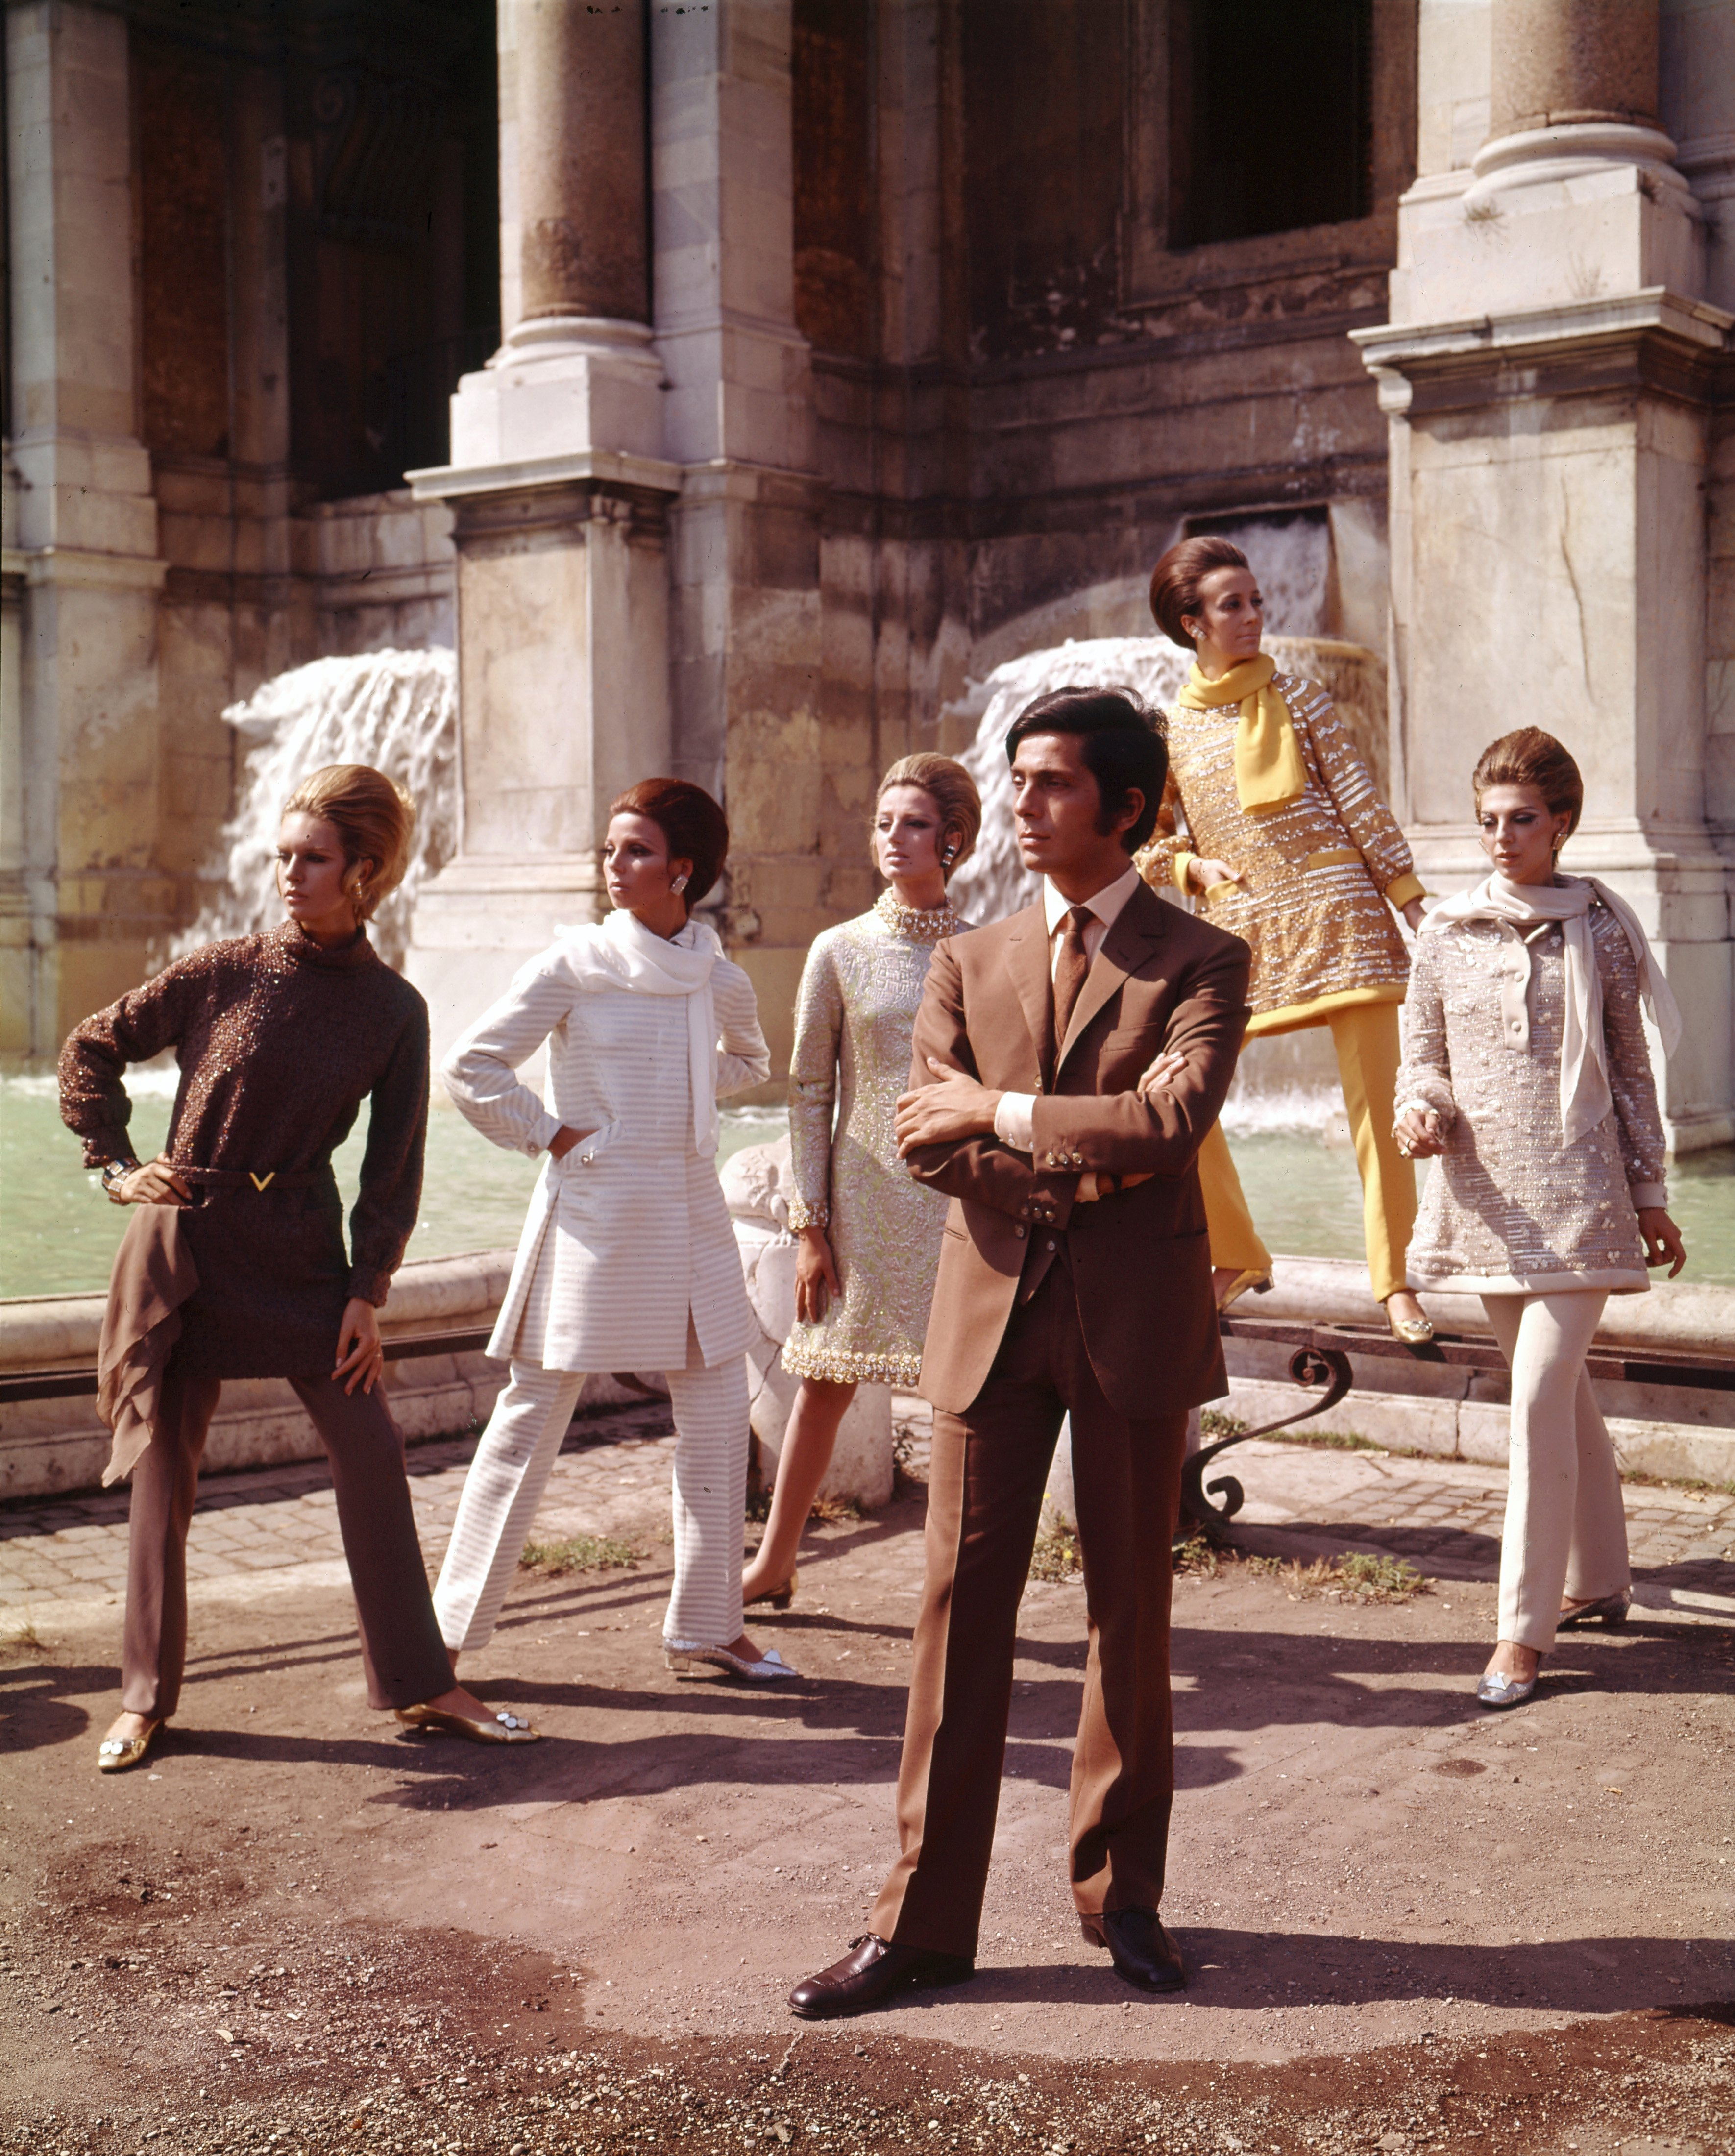 Valentino posing with models nearby Trevi Fountain. Rome, Artist: Date: July 1967 (Courtesy of The Art Archive / Mondadori Portfolio / Marisa Rastellini)